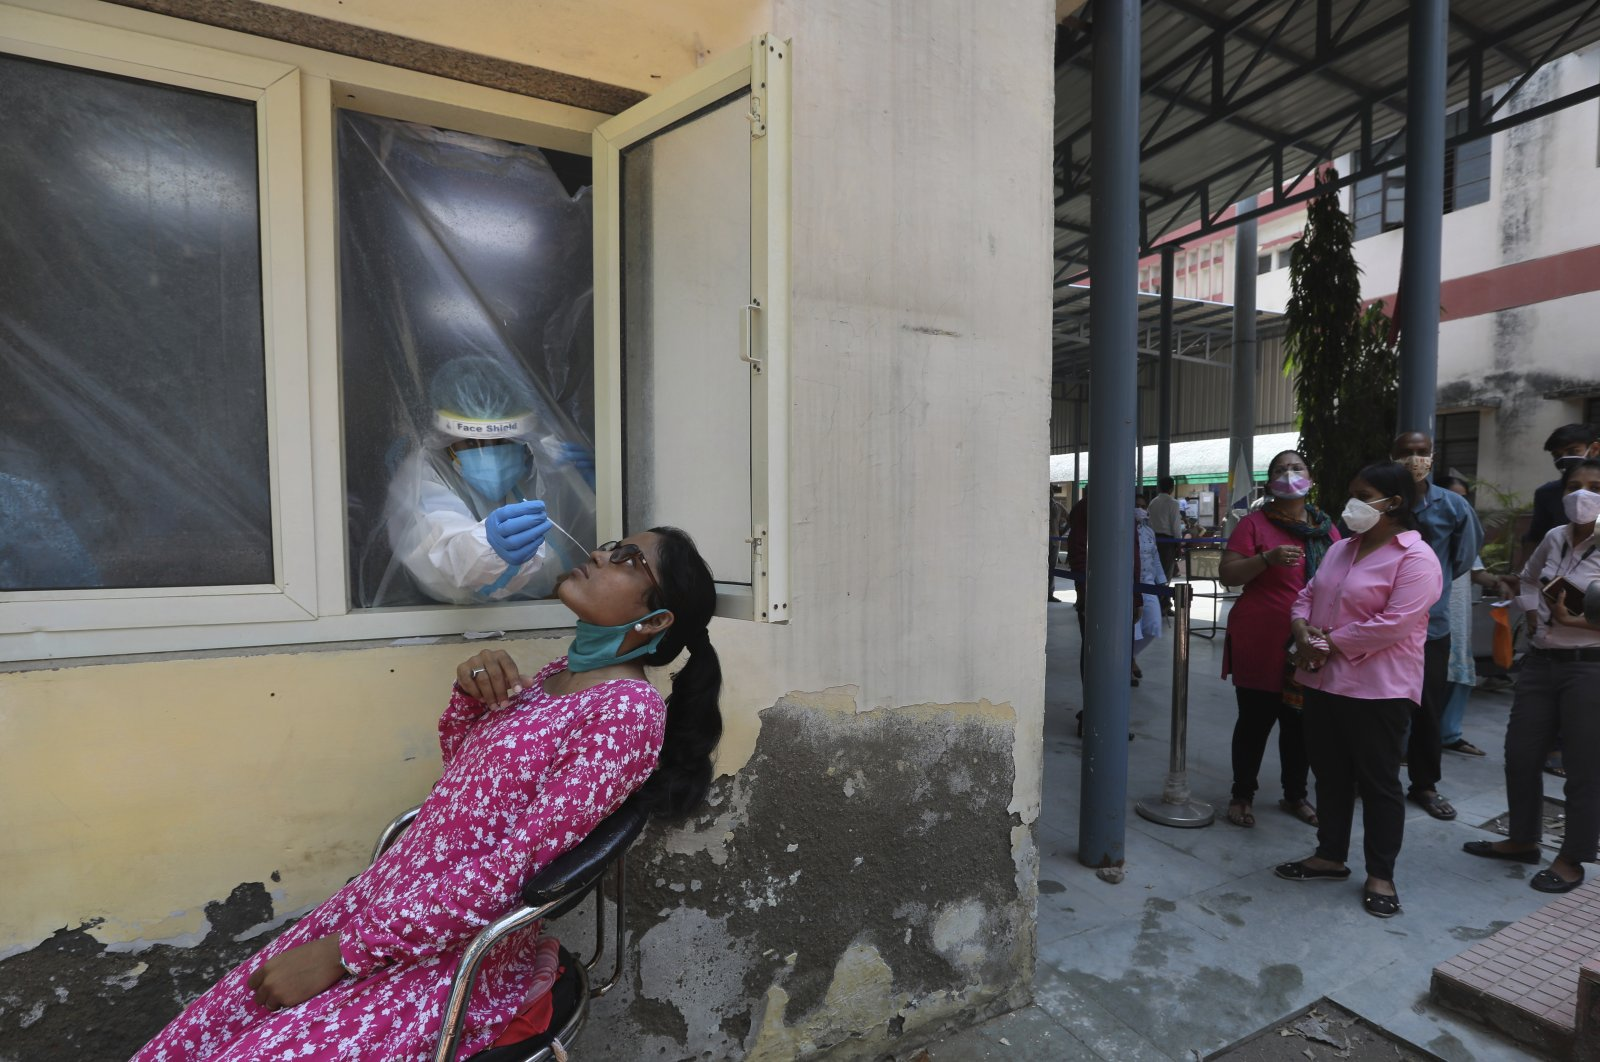 A health worker takes a nasal swab sample to test for COVID-19, as others await their turn in New Delhi, India, Saturday, Sept. 5, 2020. (AP Photo)